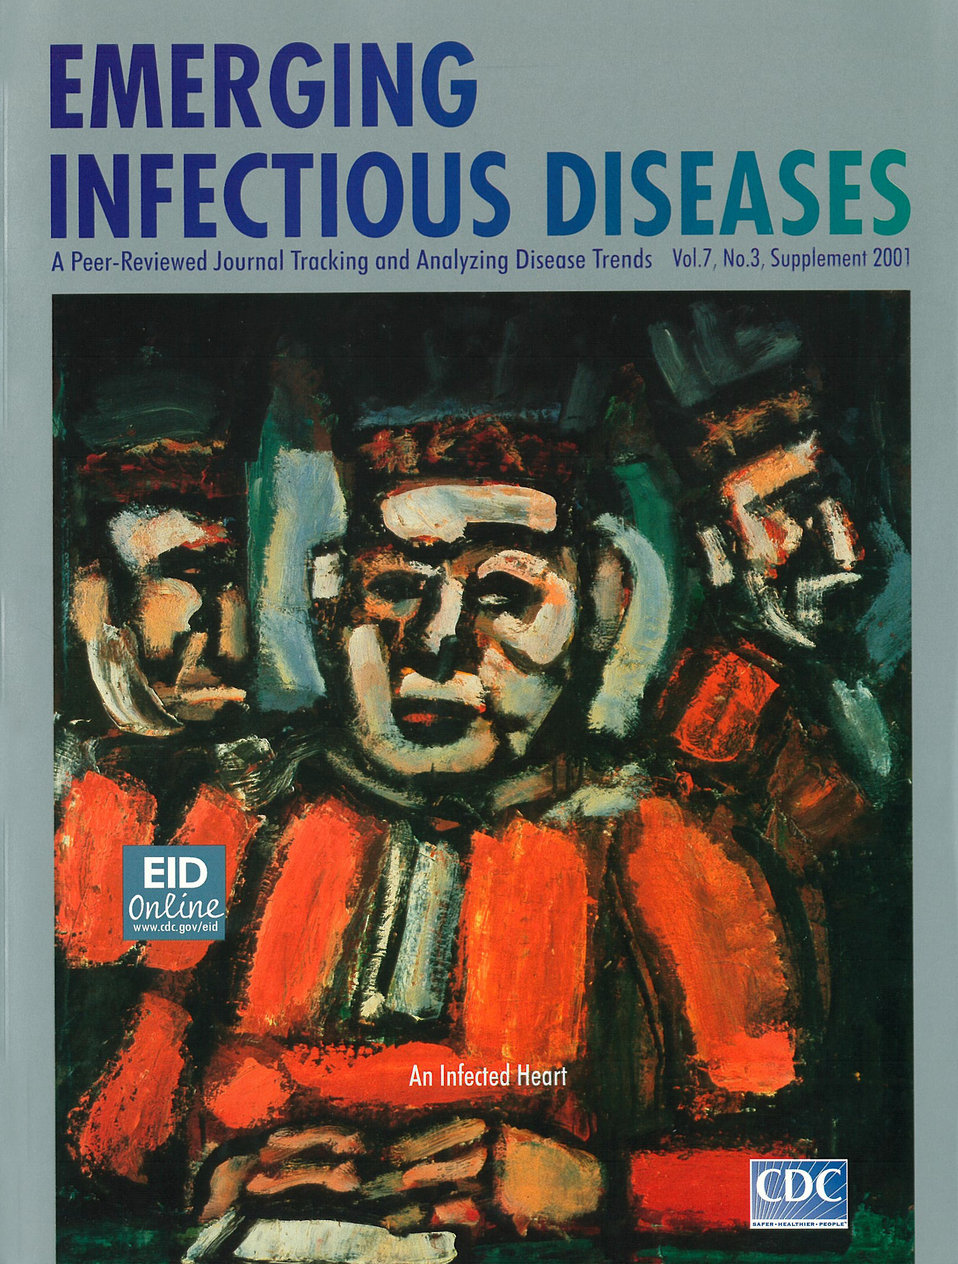 Emerging Infectious Diseases (EID) cover artwork for Volume 7, Number 3, Supplement 2001 issue.